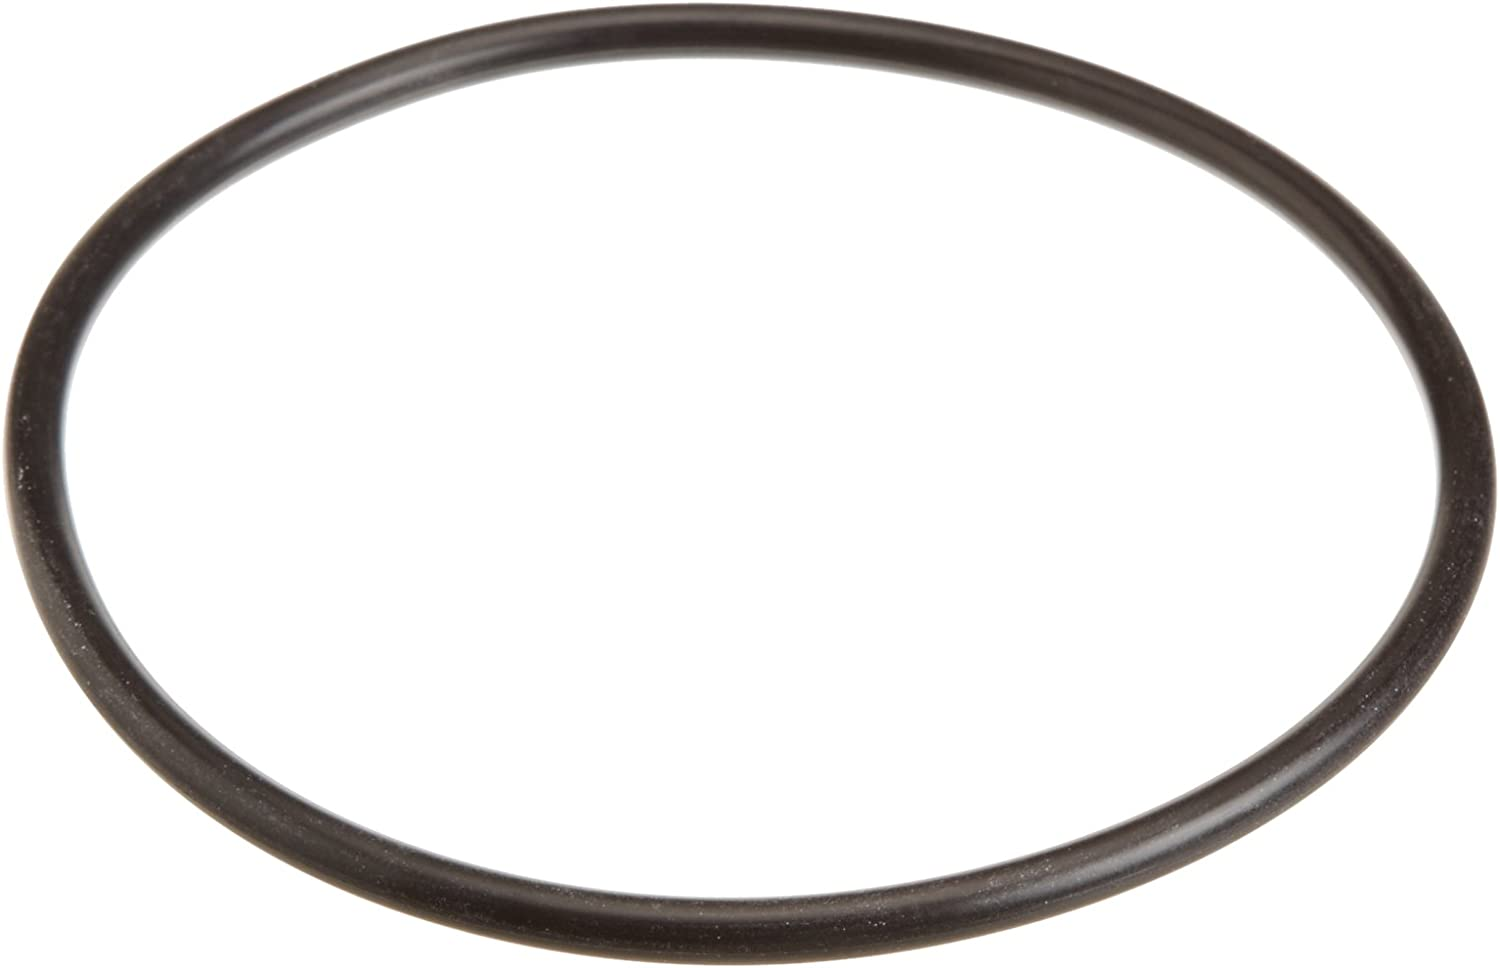 Pentair U9-229 O-Ring for Trap Cover Replacement for Select Sta-Rite Pool and Spa Pump